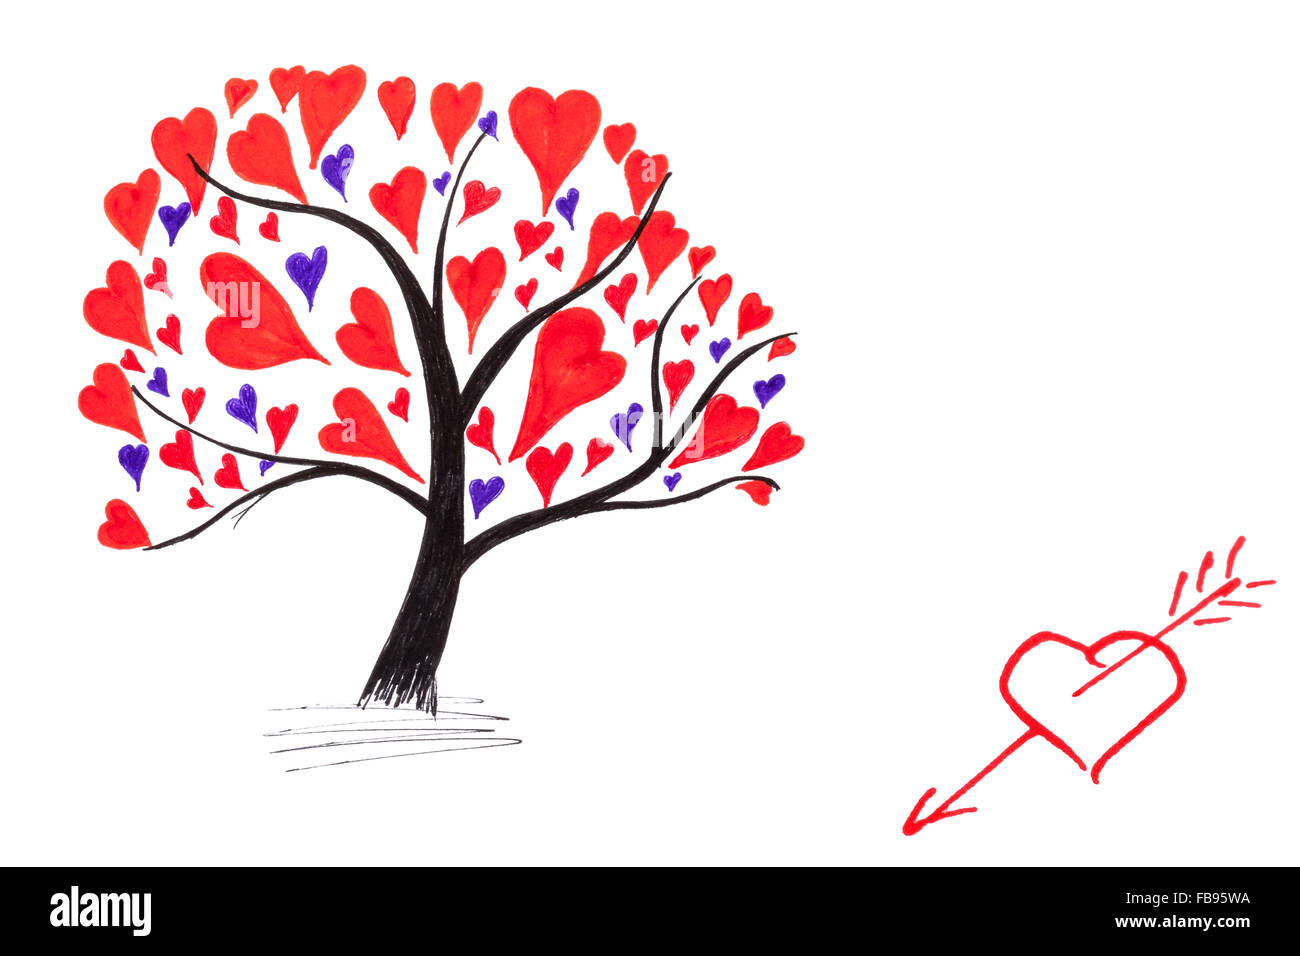 Handmade Valentine Card With Ink Drawing Of Tree With Hearts Stock